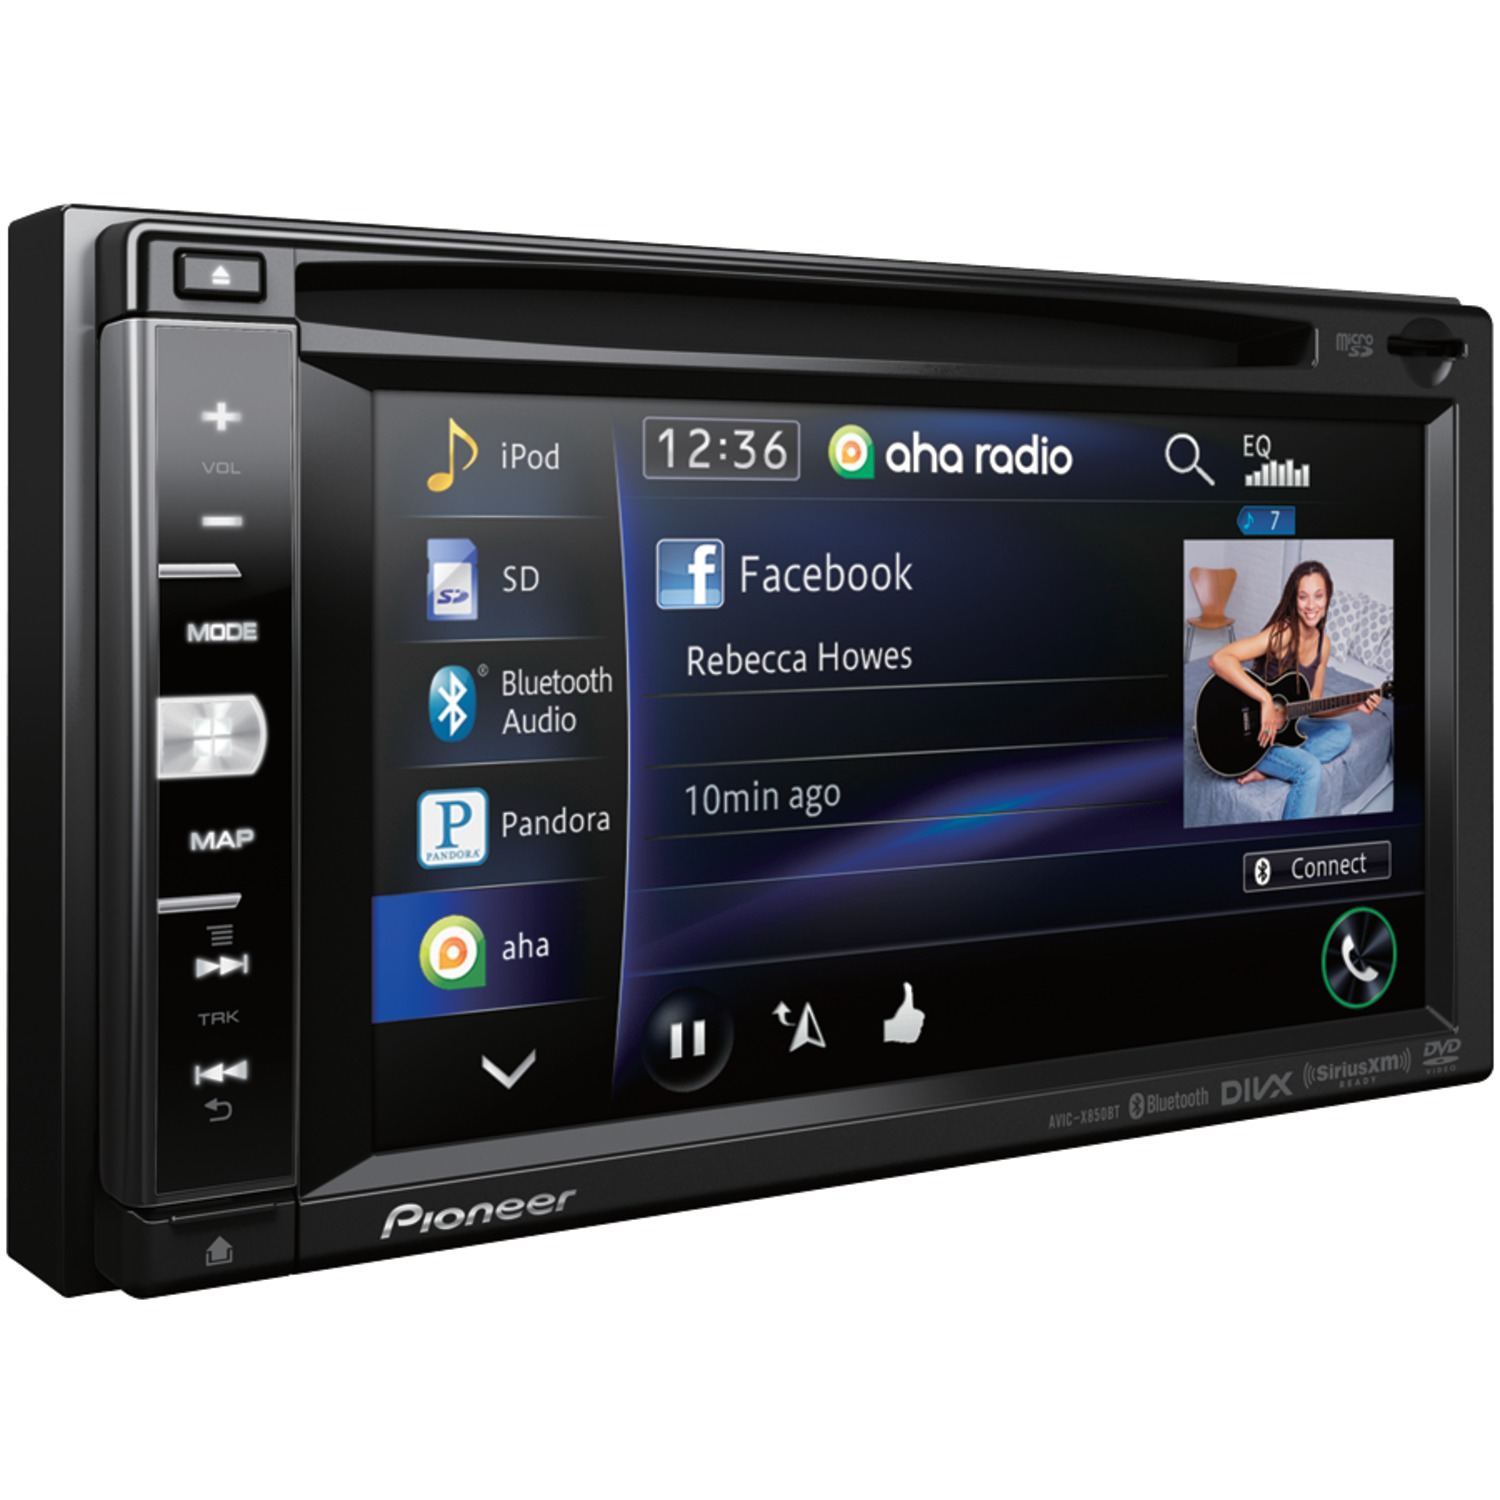 pioneer avic x850bt 6 1 double din in dash dvd navigation a v receiver with bluetooth r. Black Bedroom Furniture Sets. Home Design Ideas